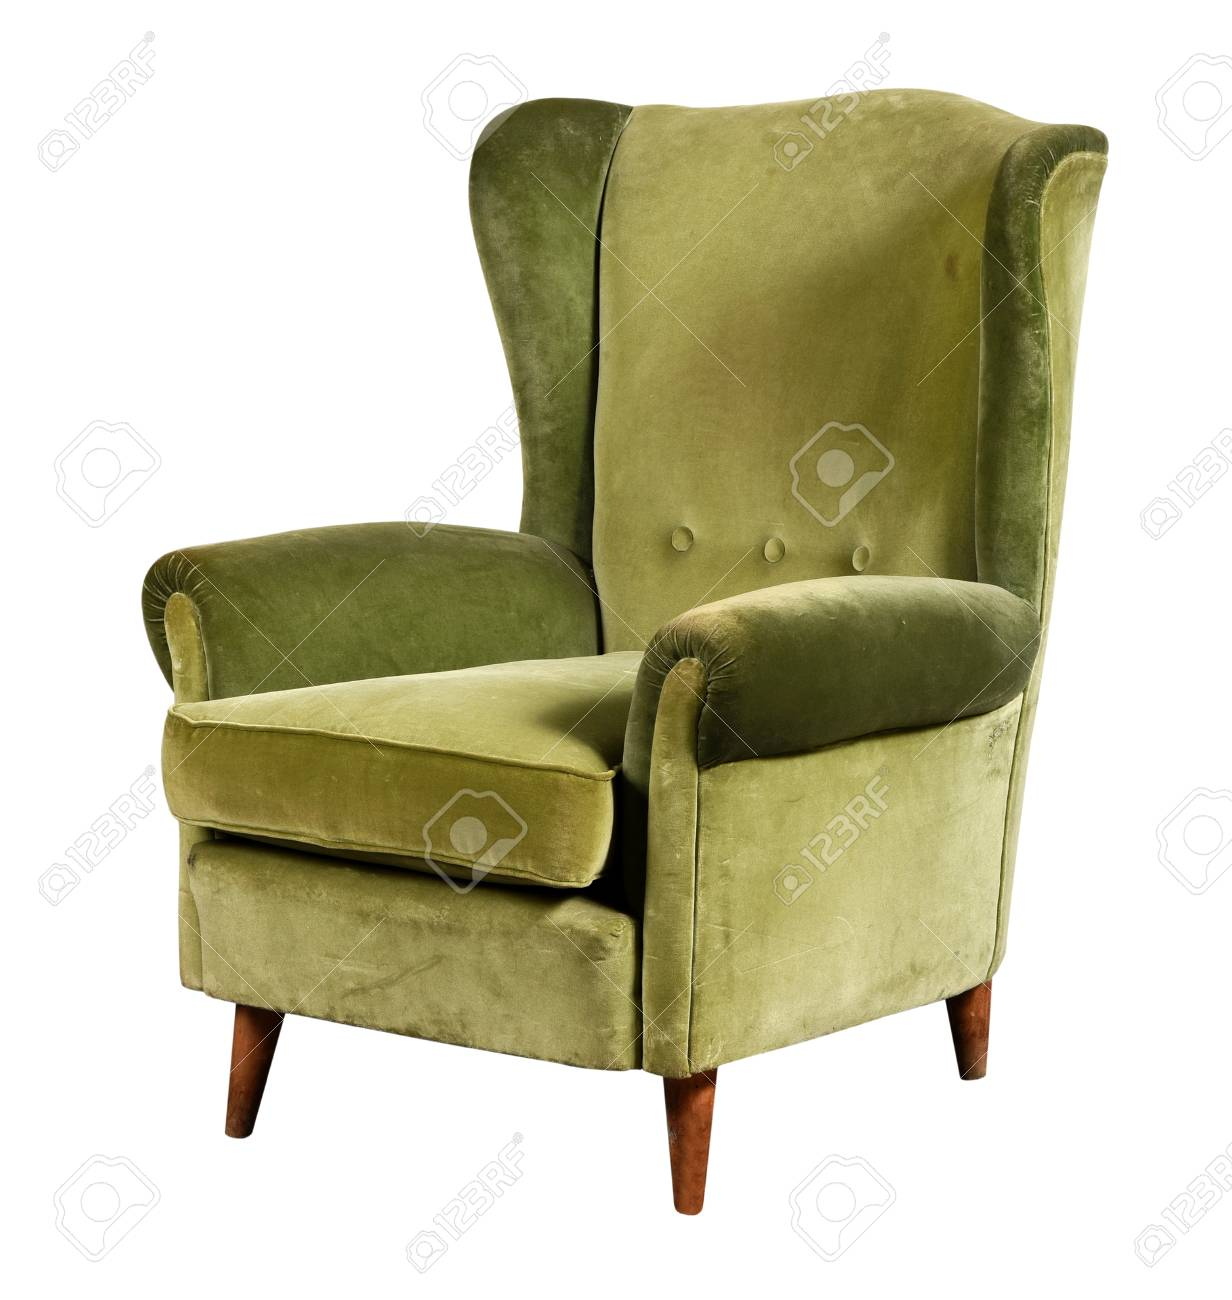 Green Velvet Armchair Of Old Design On Short Legs With High Back Isolated  On White Background